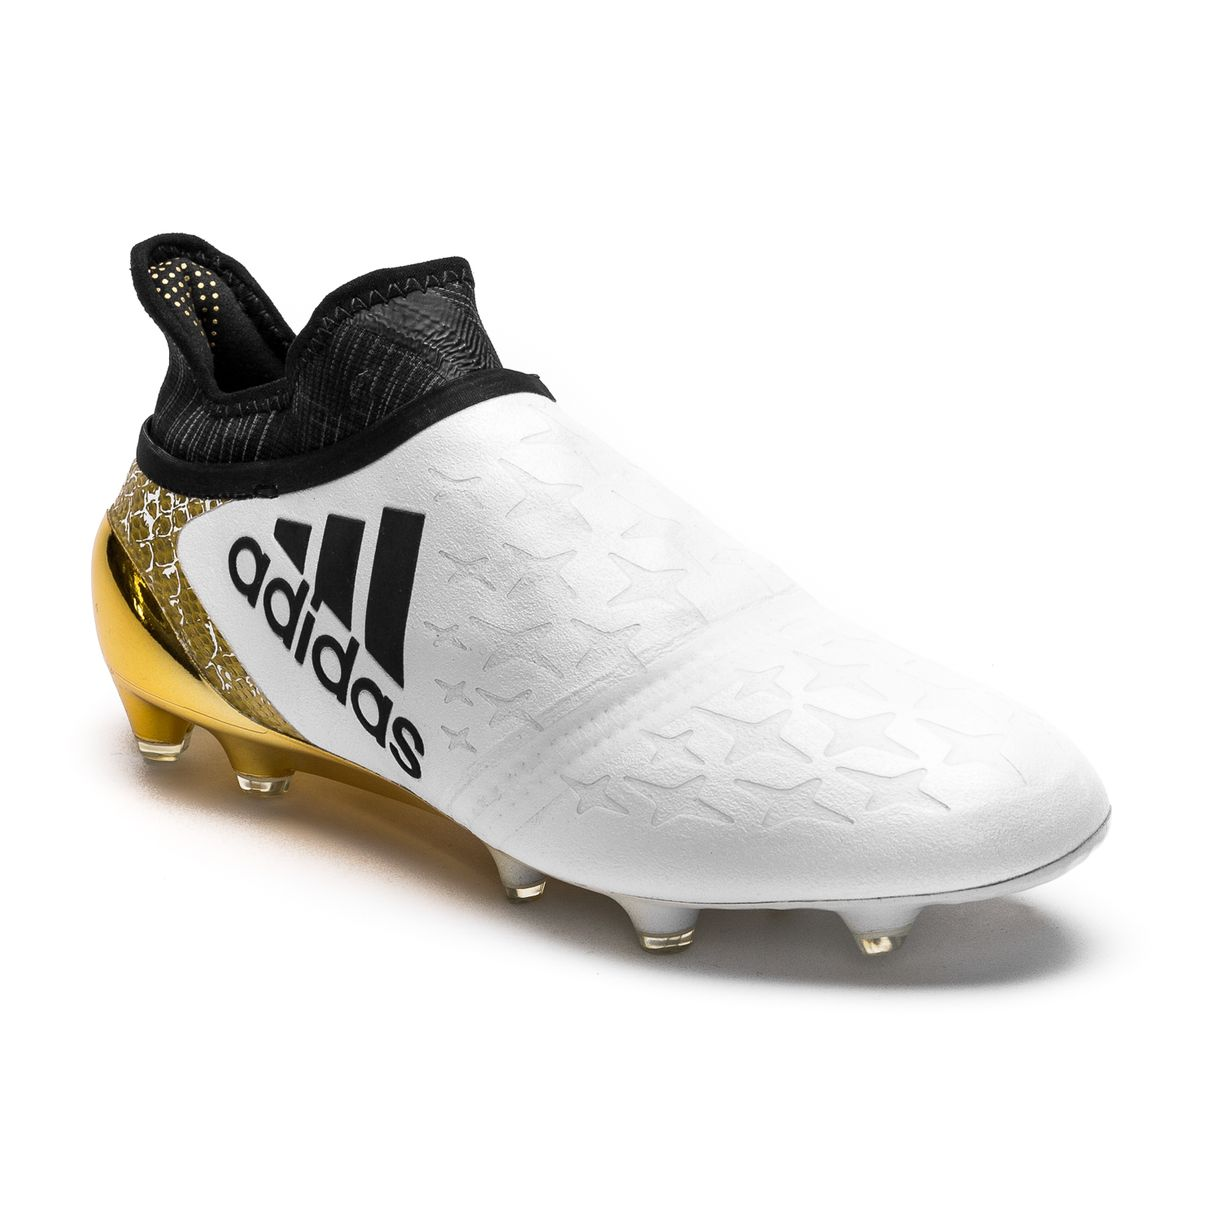 adidas X 16 Purechaos FG/AG Leather Core Black/White/Gold Metallic